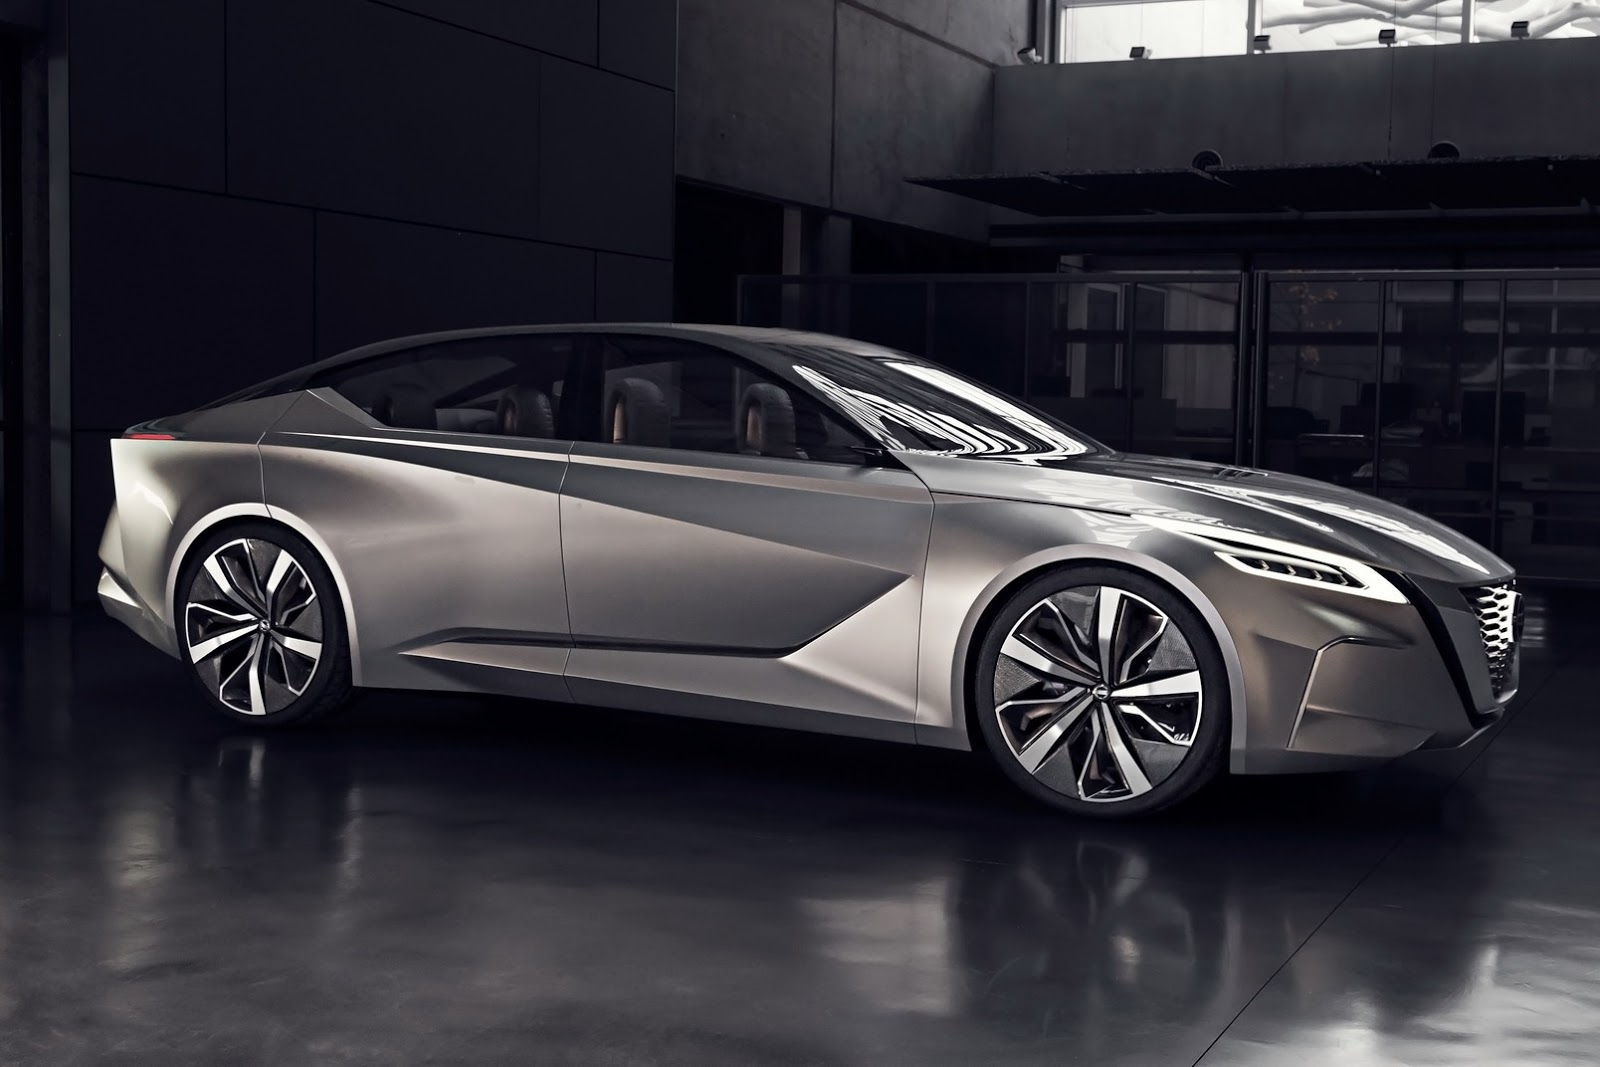 Nissan Vmotion 2.0 concept (2)